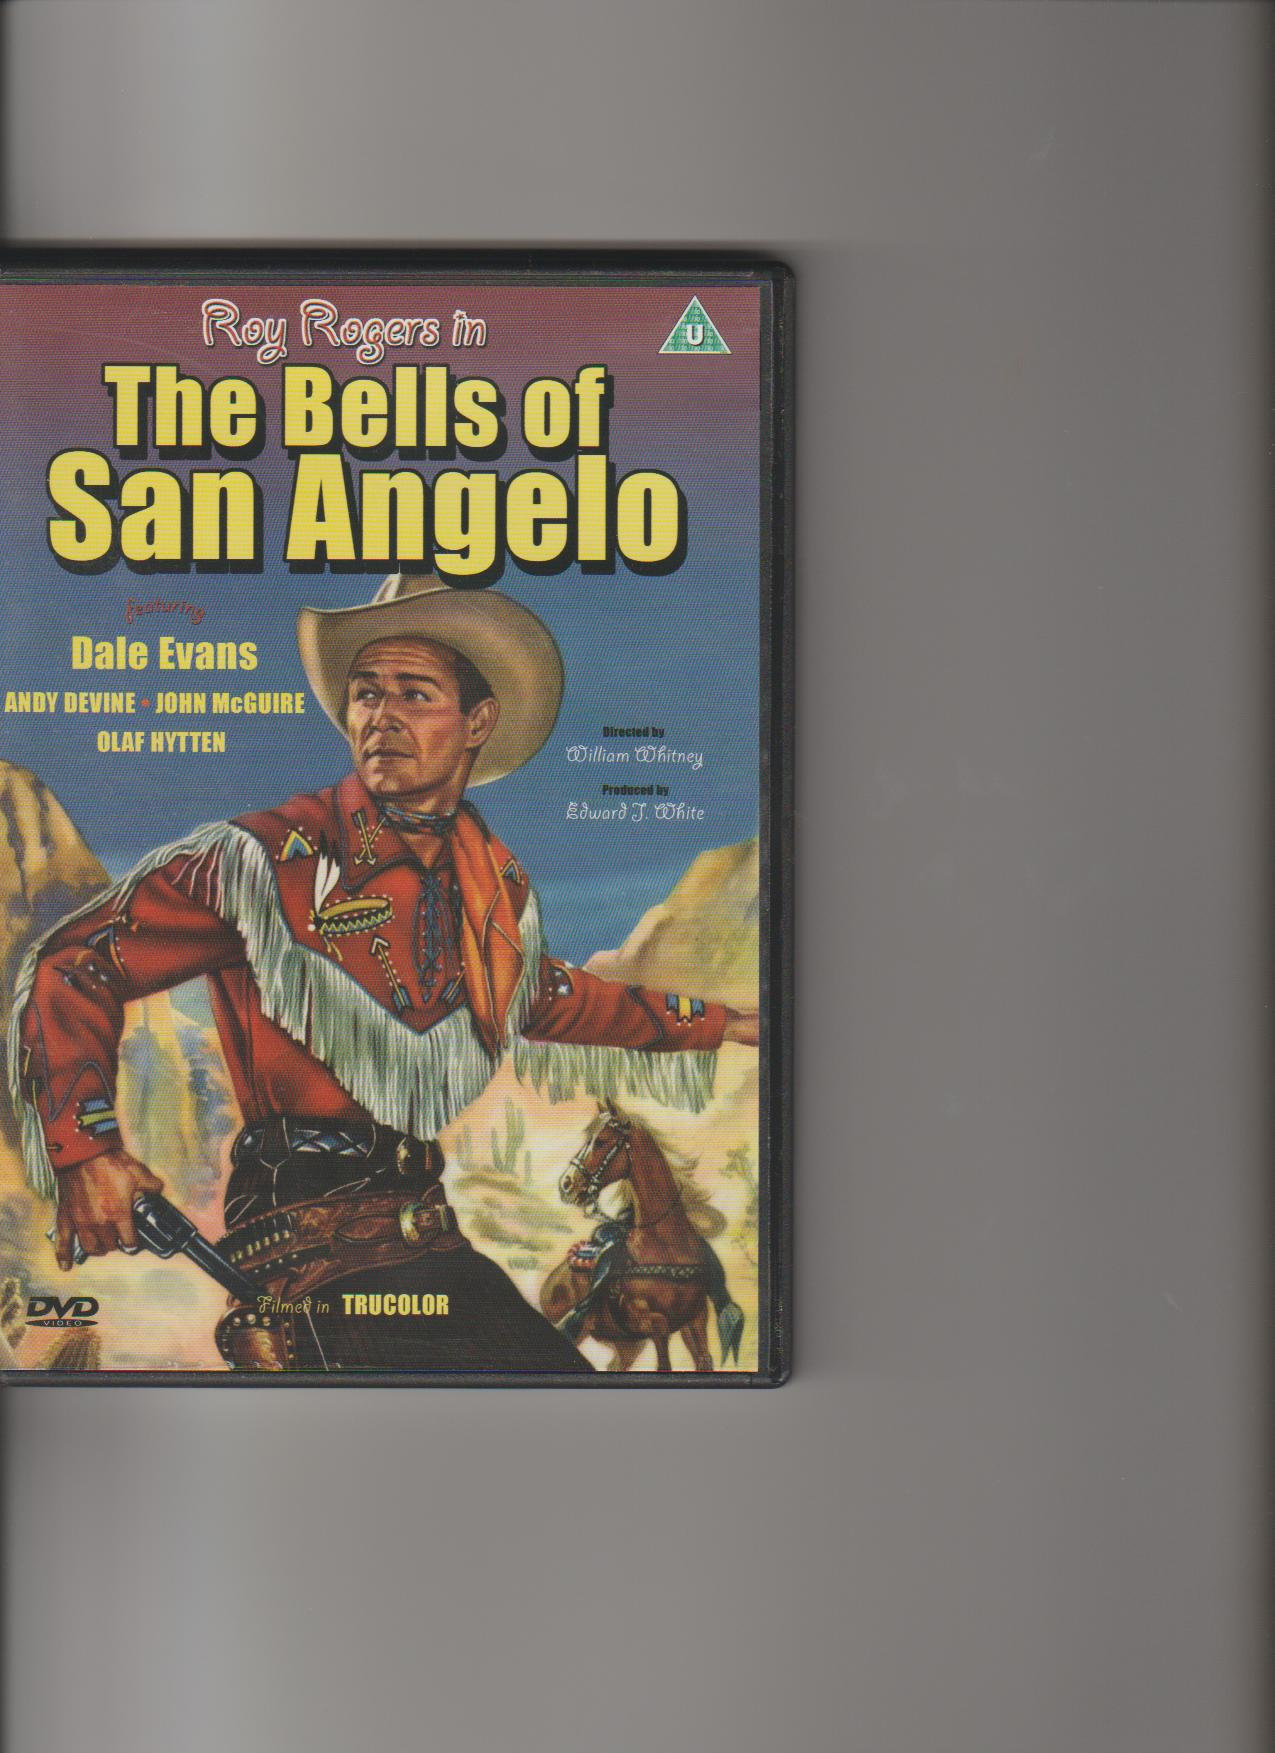 THE BELLS OF SAN ANGELO (FEATURING ROY ROGERS AND DALE EVANS)